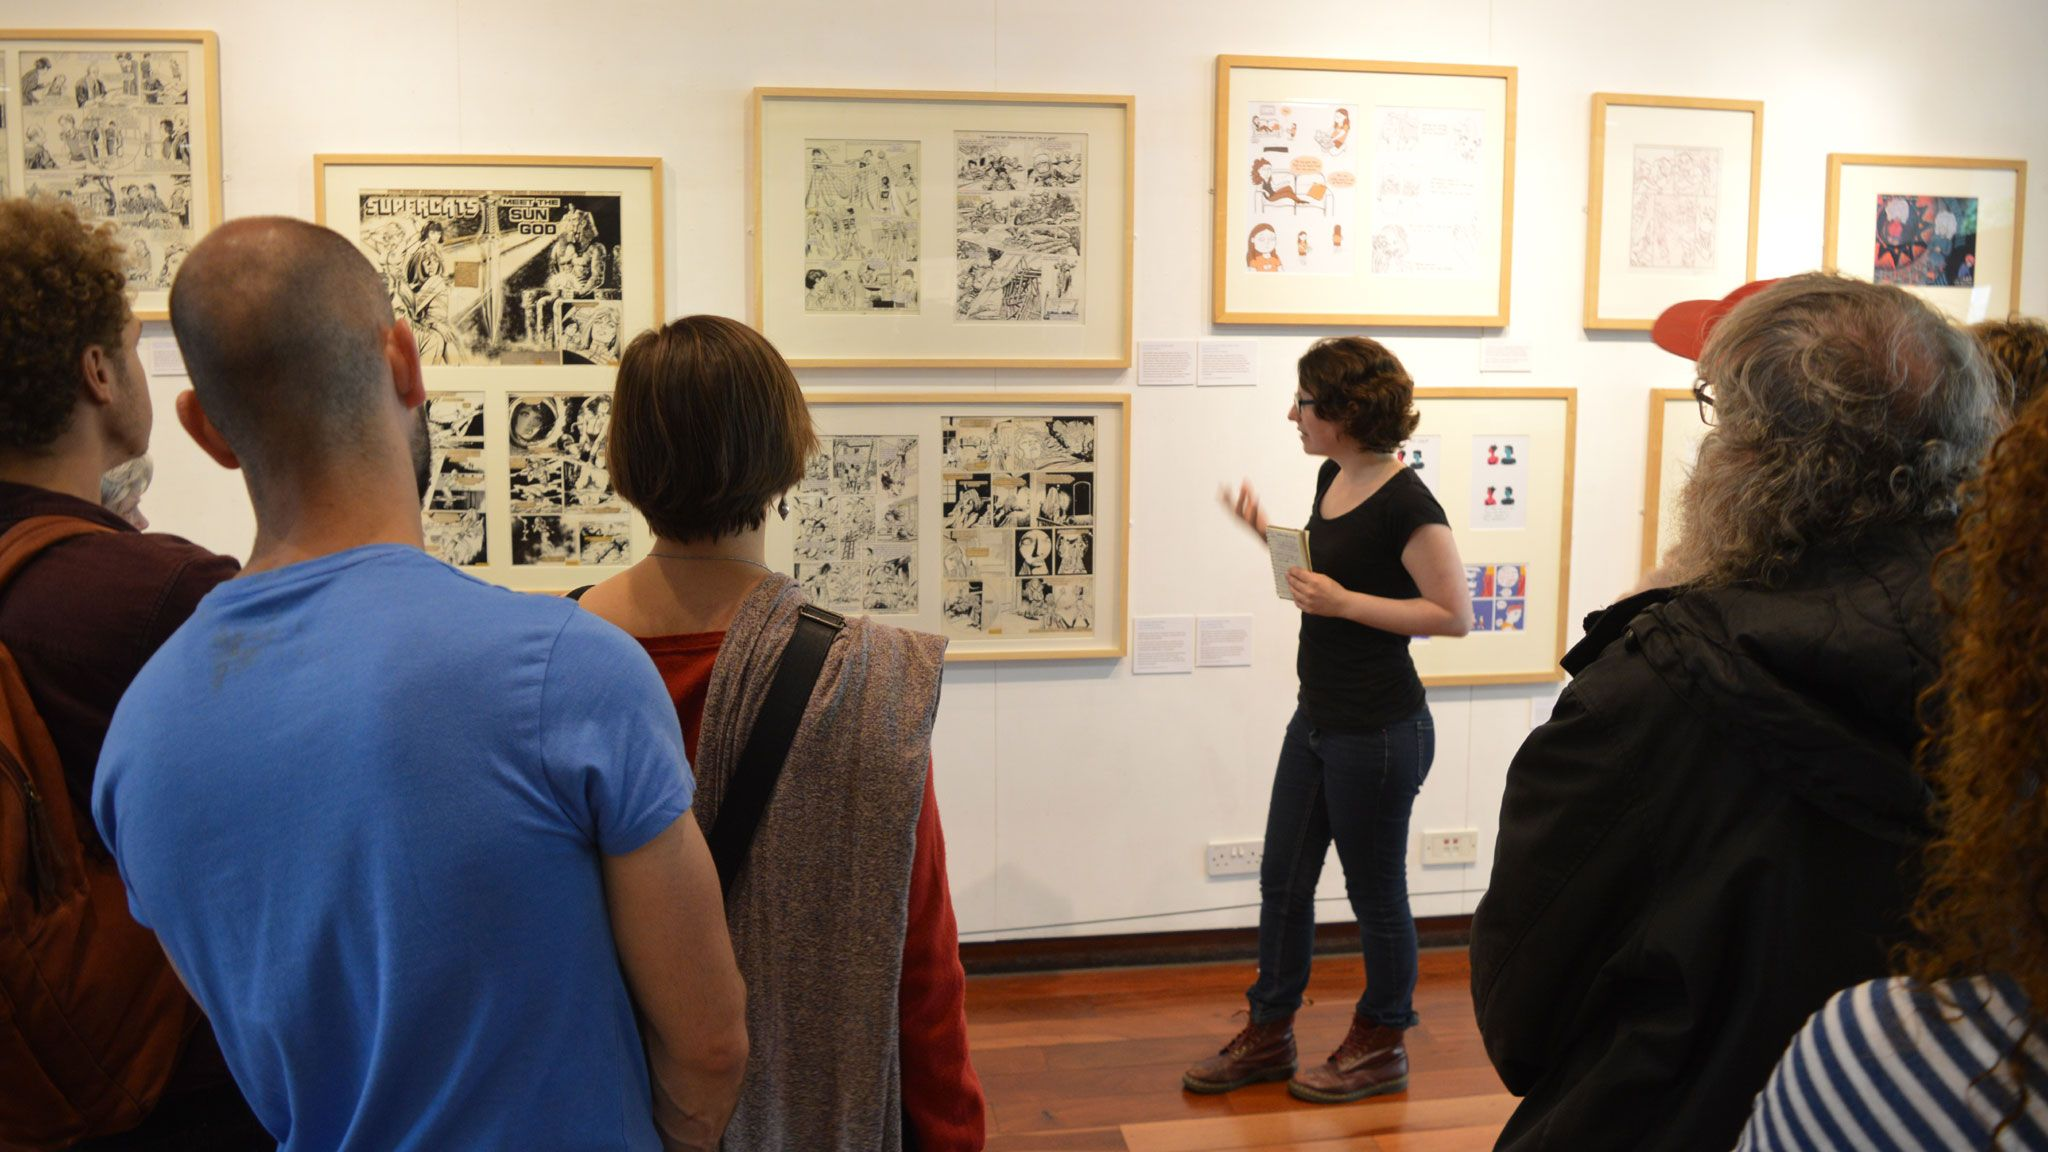 Louise Quirion gives a tour of the exhibition